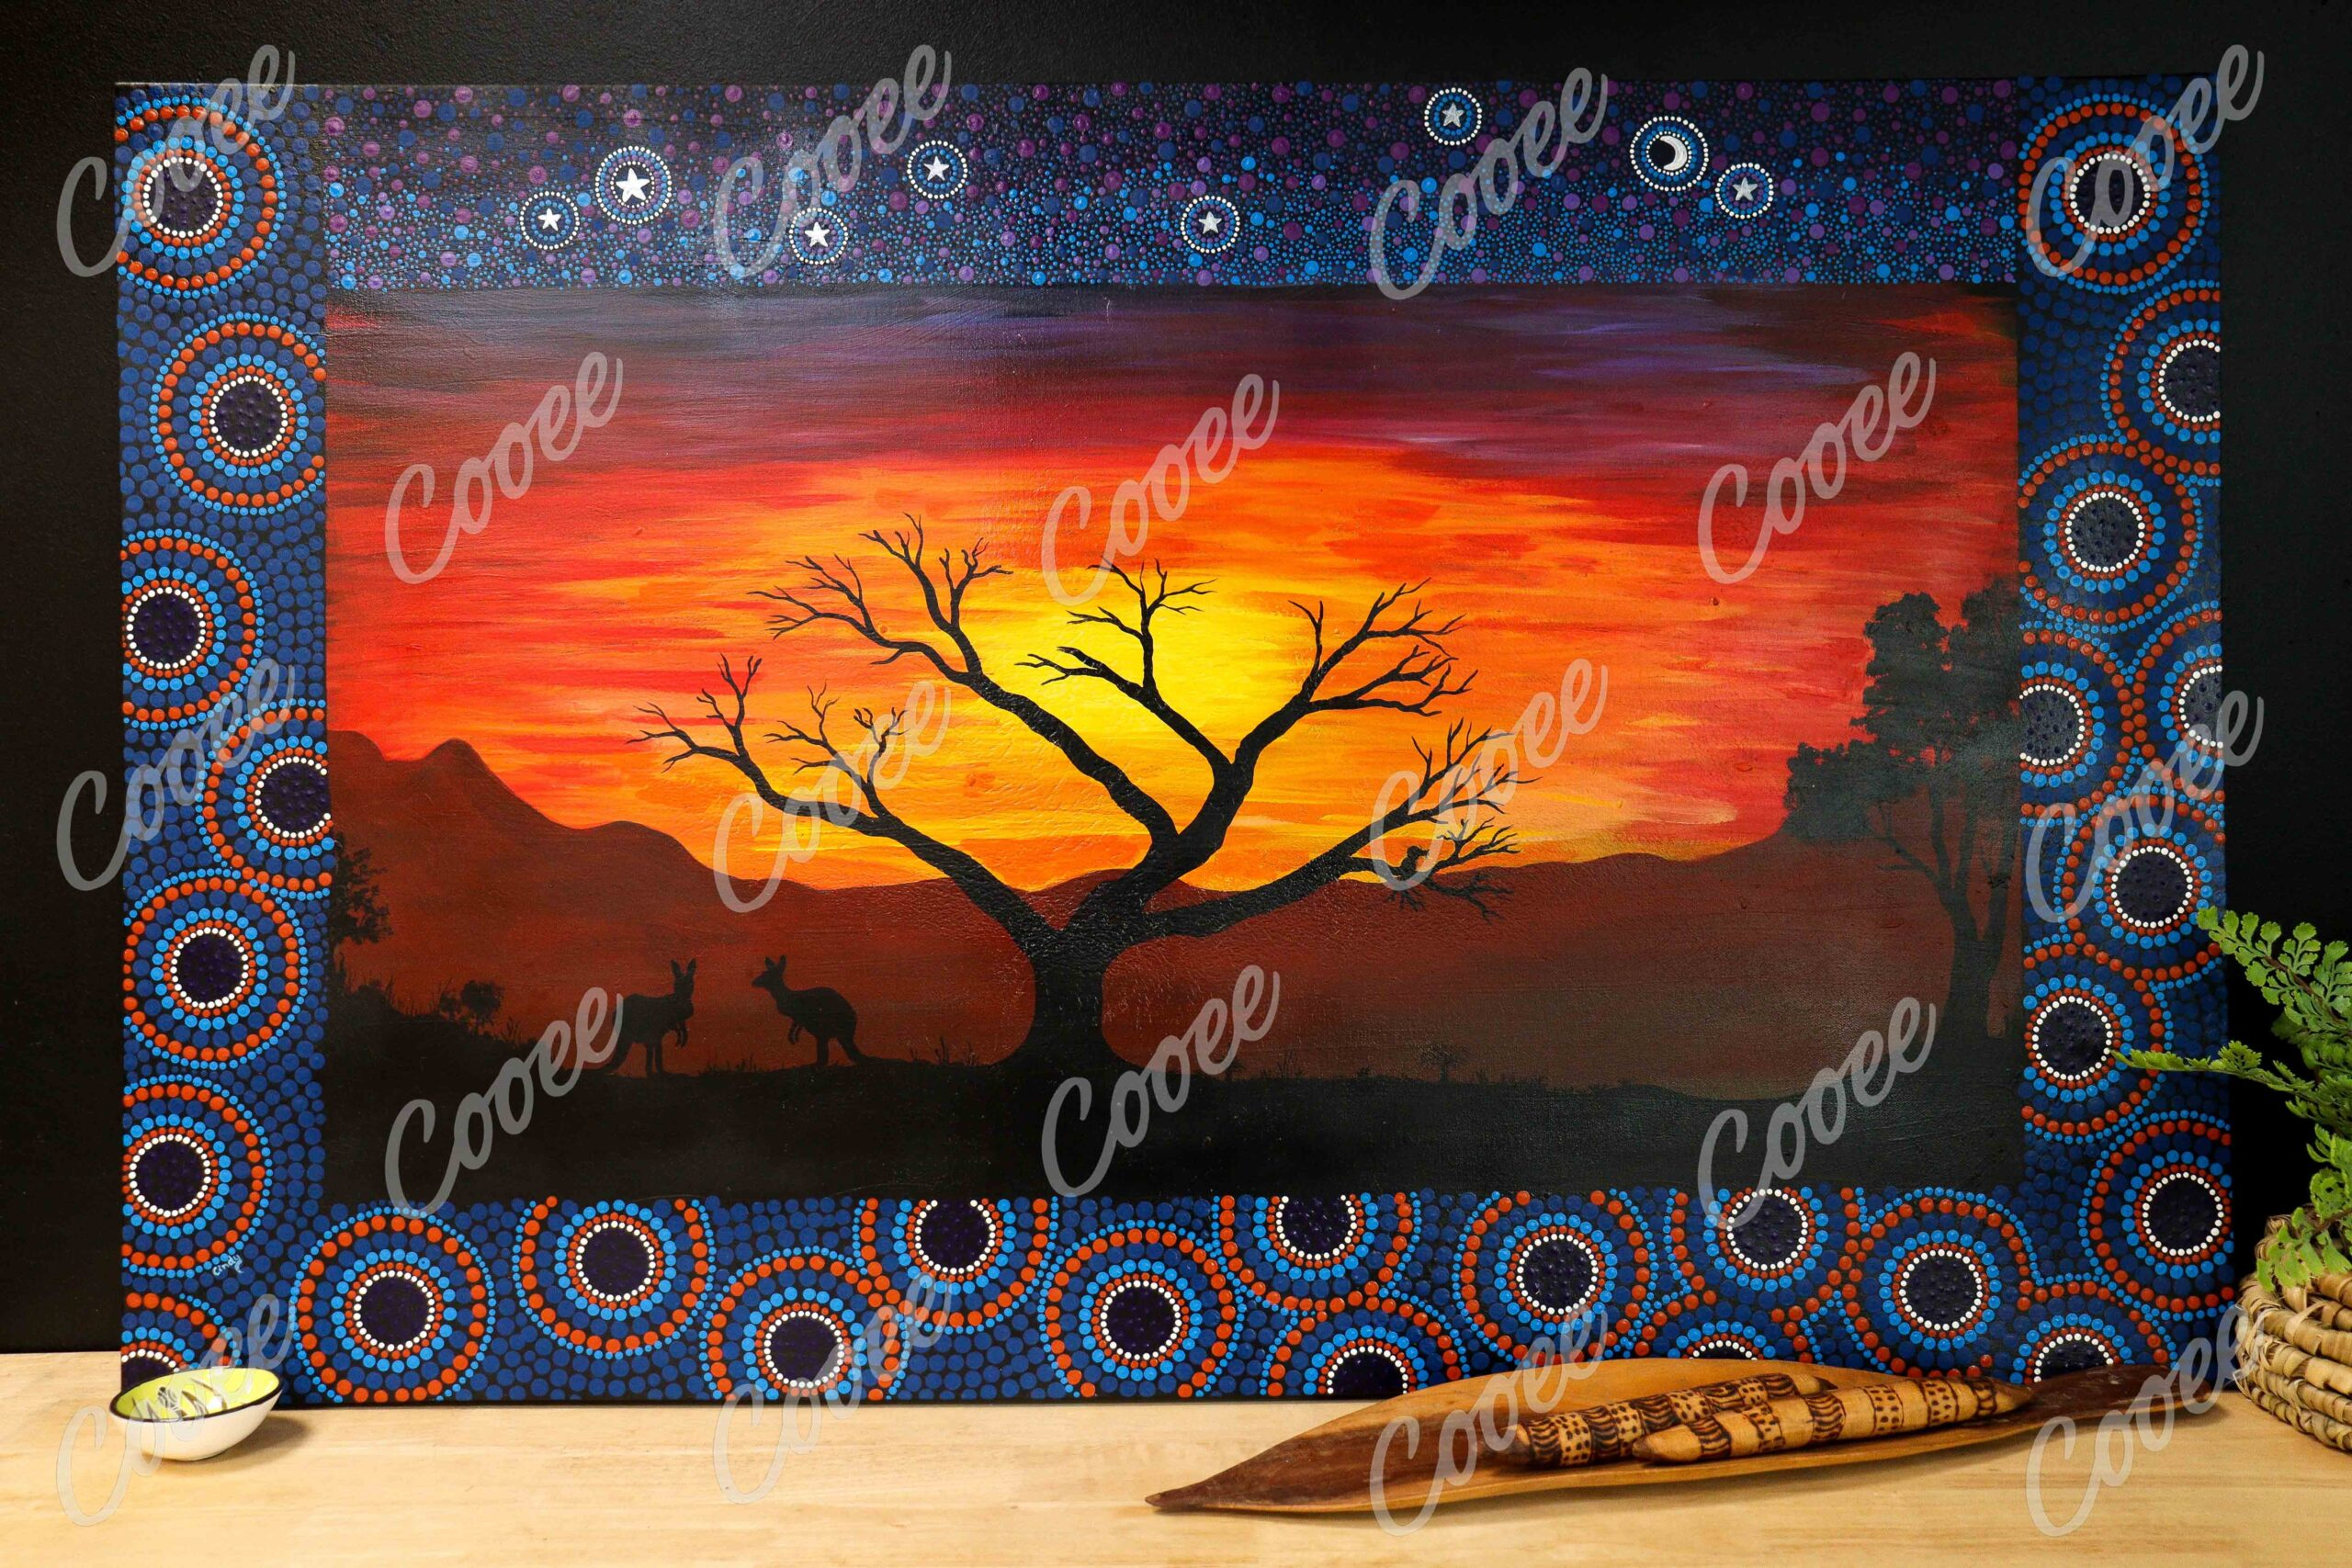 Cooee-Cafe-Original-Indigenous-Painting29